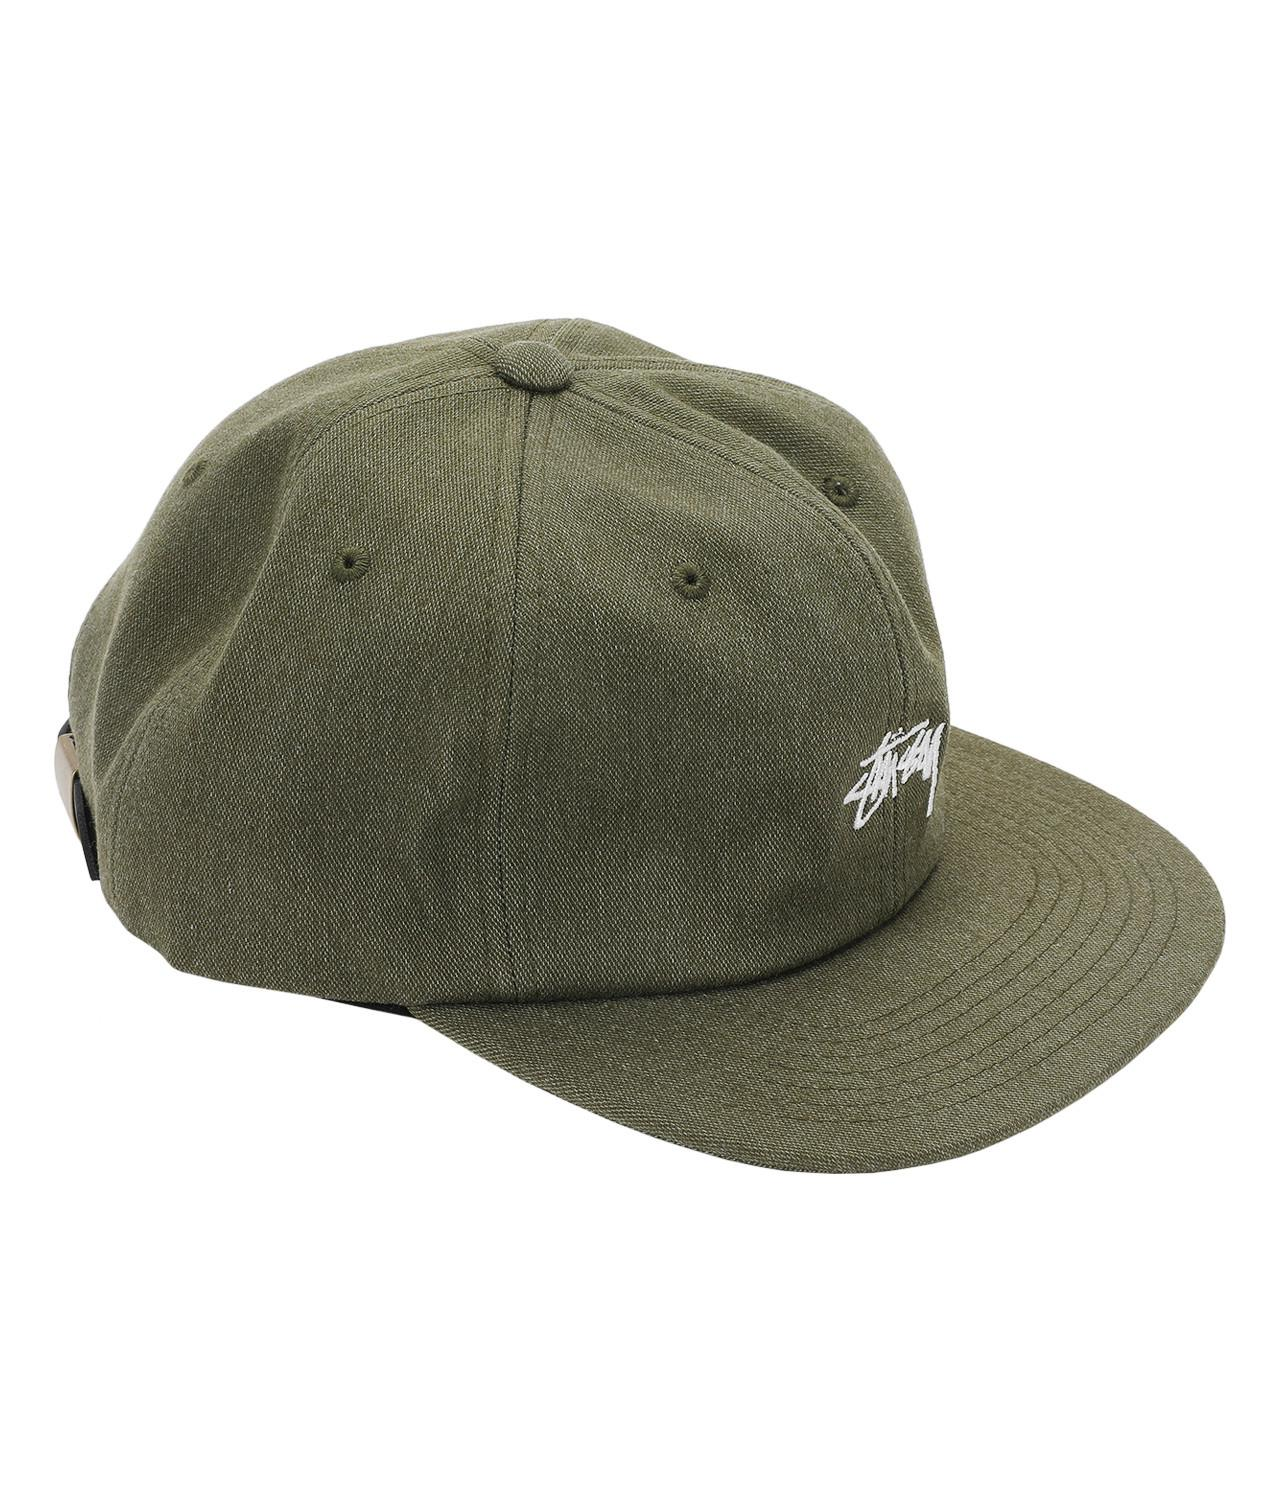 b4c4add63e9 Lyst - Stussy Melange Denim Strapback Cap in Green for Men